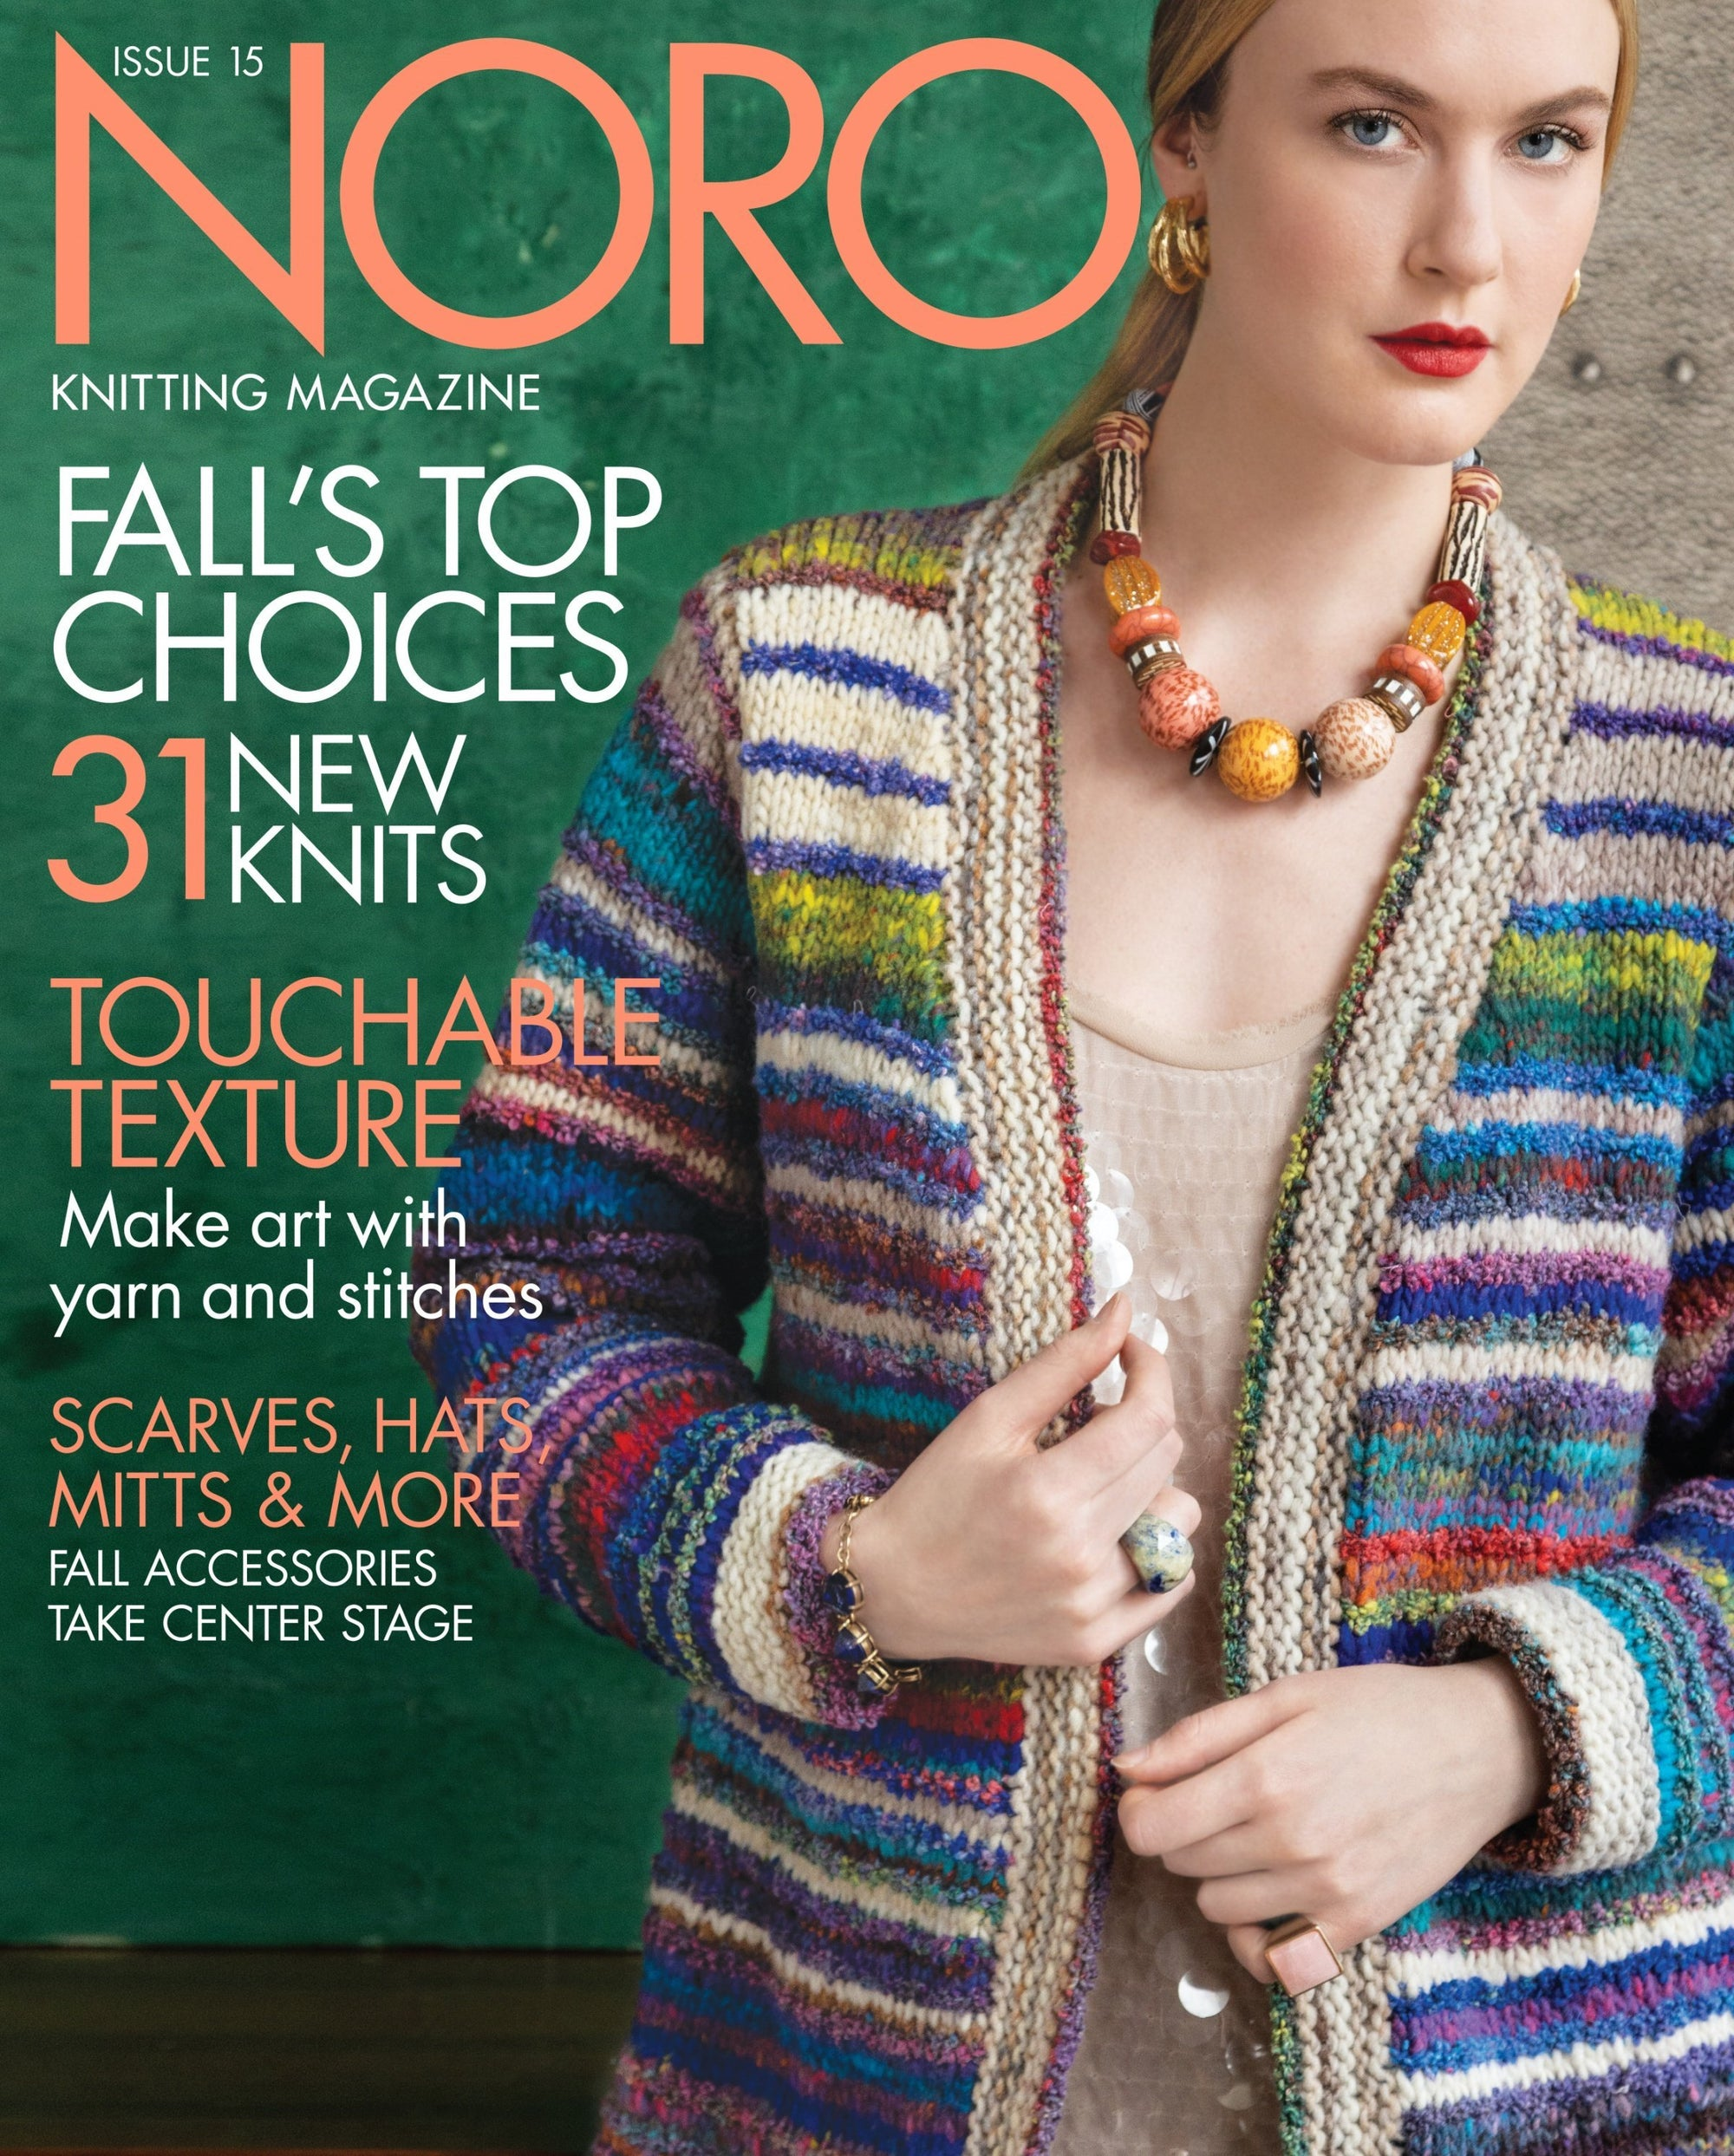 Noro Magazine Issue 15 Noro Magazine